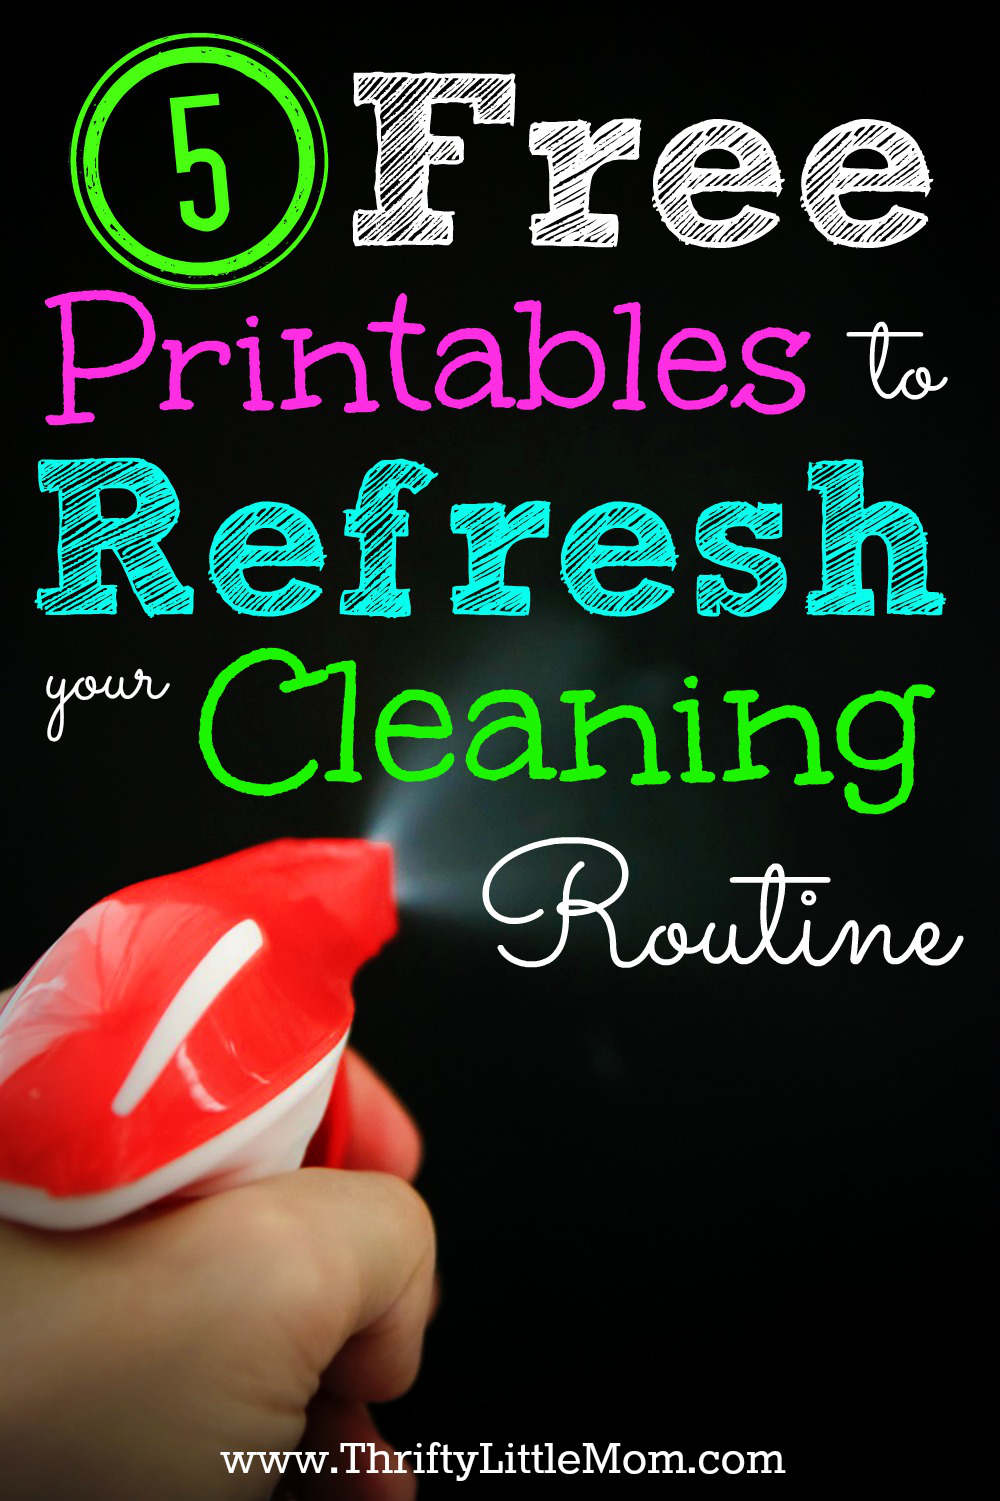 5 Free Printables to Refresh your cleaning routine. Get organized using your own home printer!